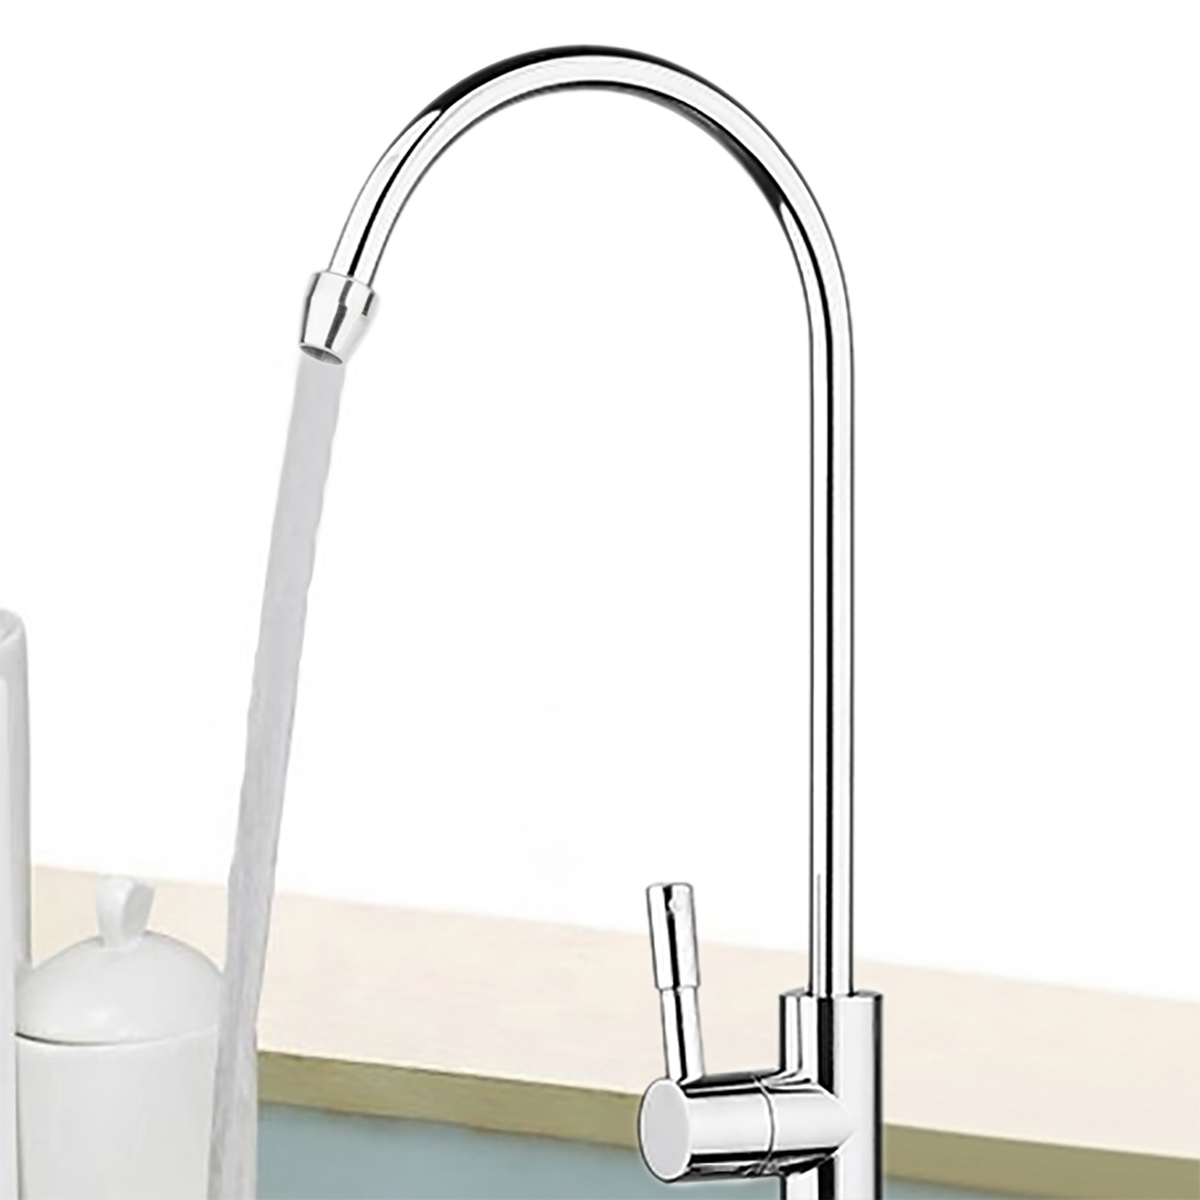 gpd series your reverse drinking system expandable membrane easy home view images osmosis kitchen detailed faucets black connect to faucet